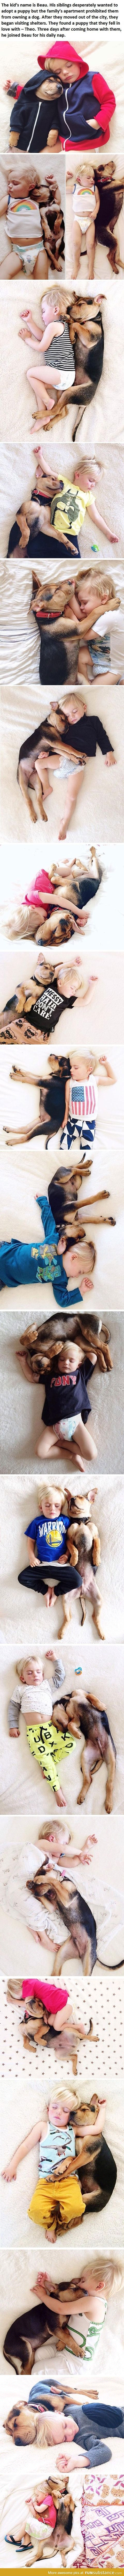 This is the most adorable thing I have ever seen.